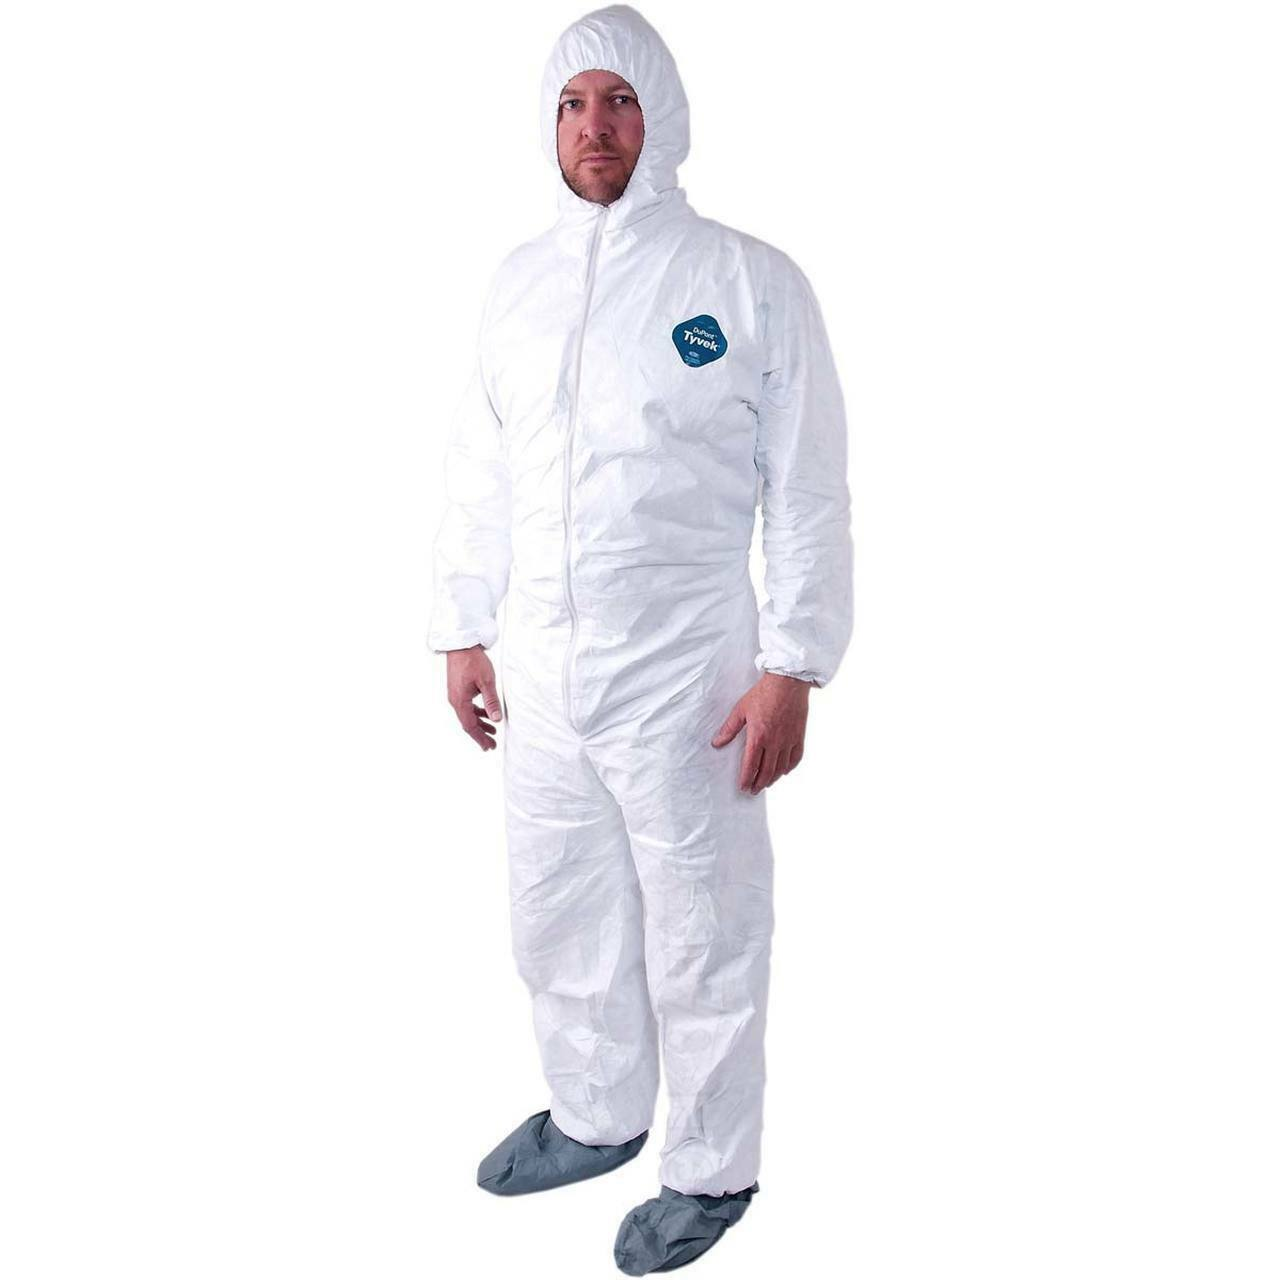 Dupont TY122S White Tyvek Disposabl Coverall Bunny Suit Hood & Boots Size M-5XL Clothing, Shoes & Accessories